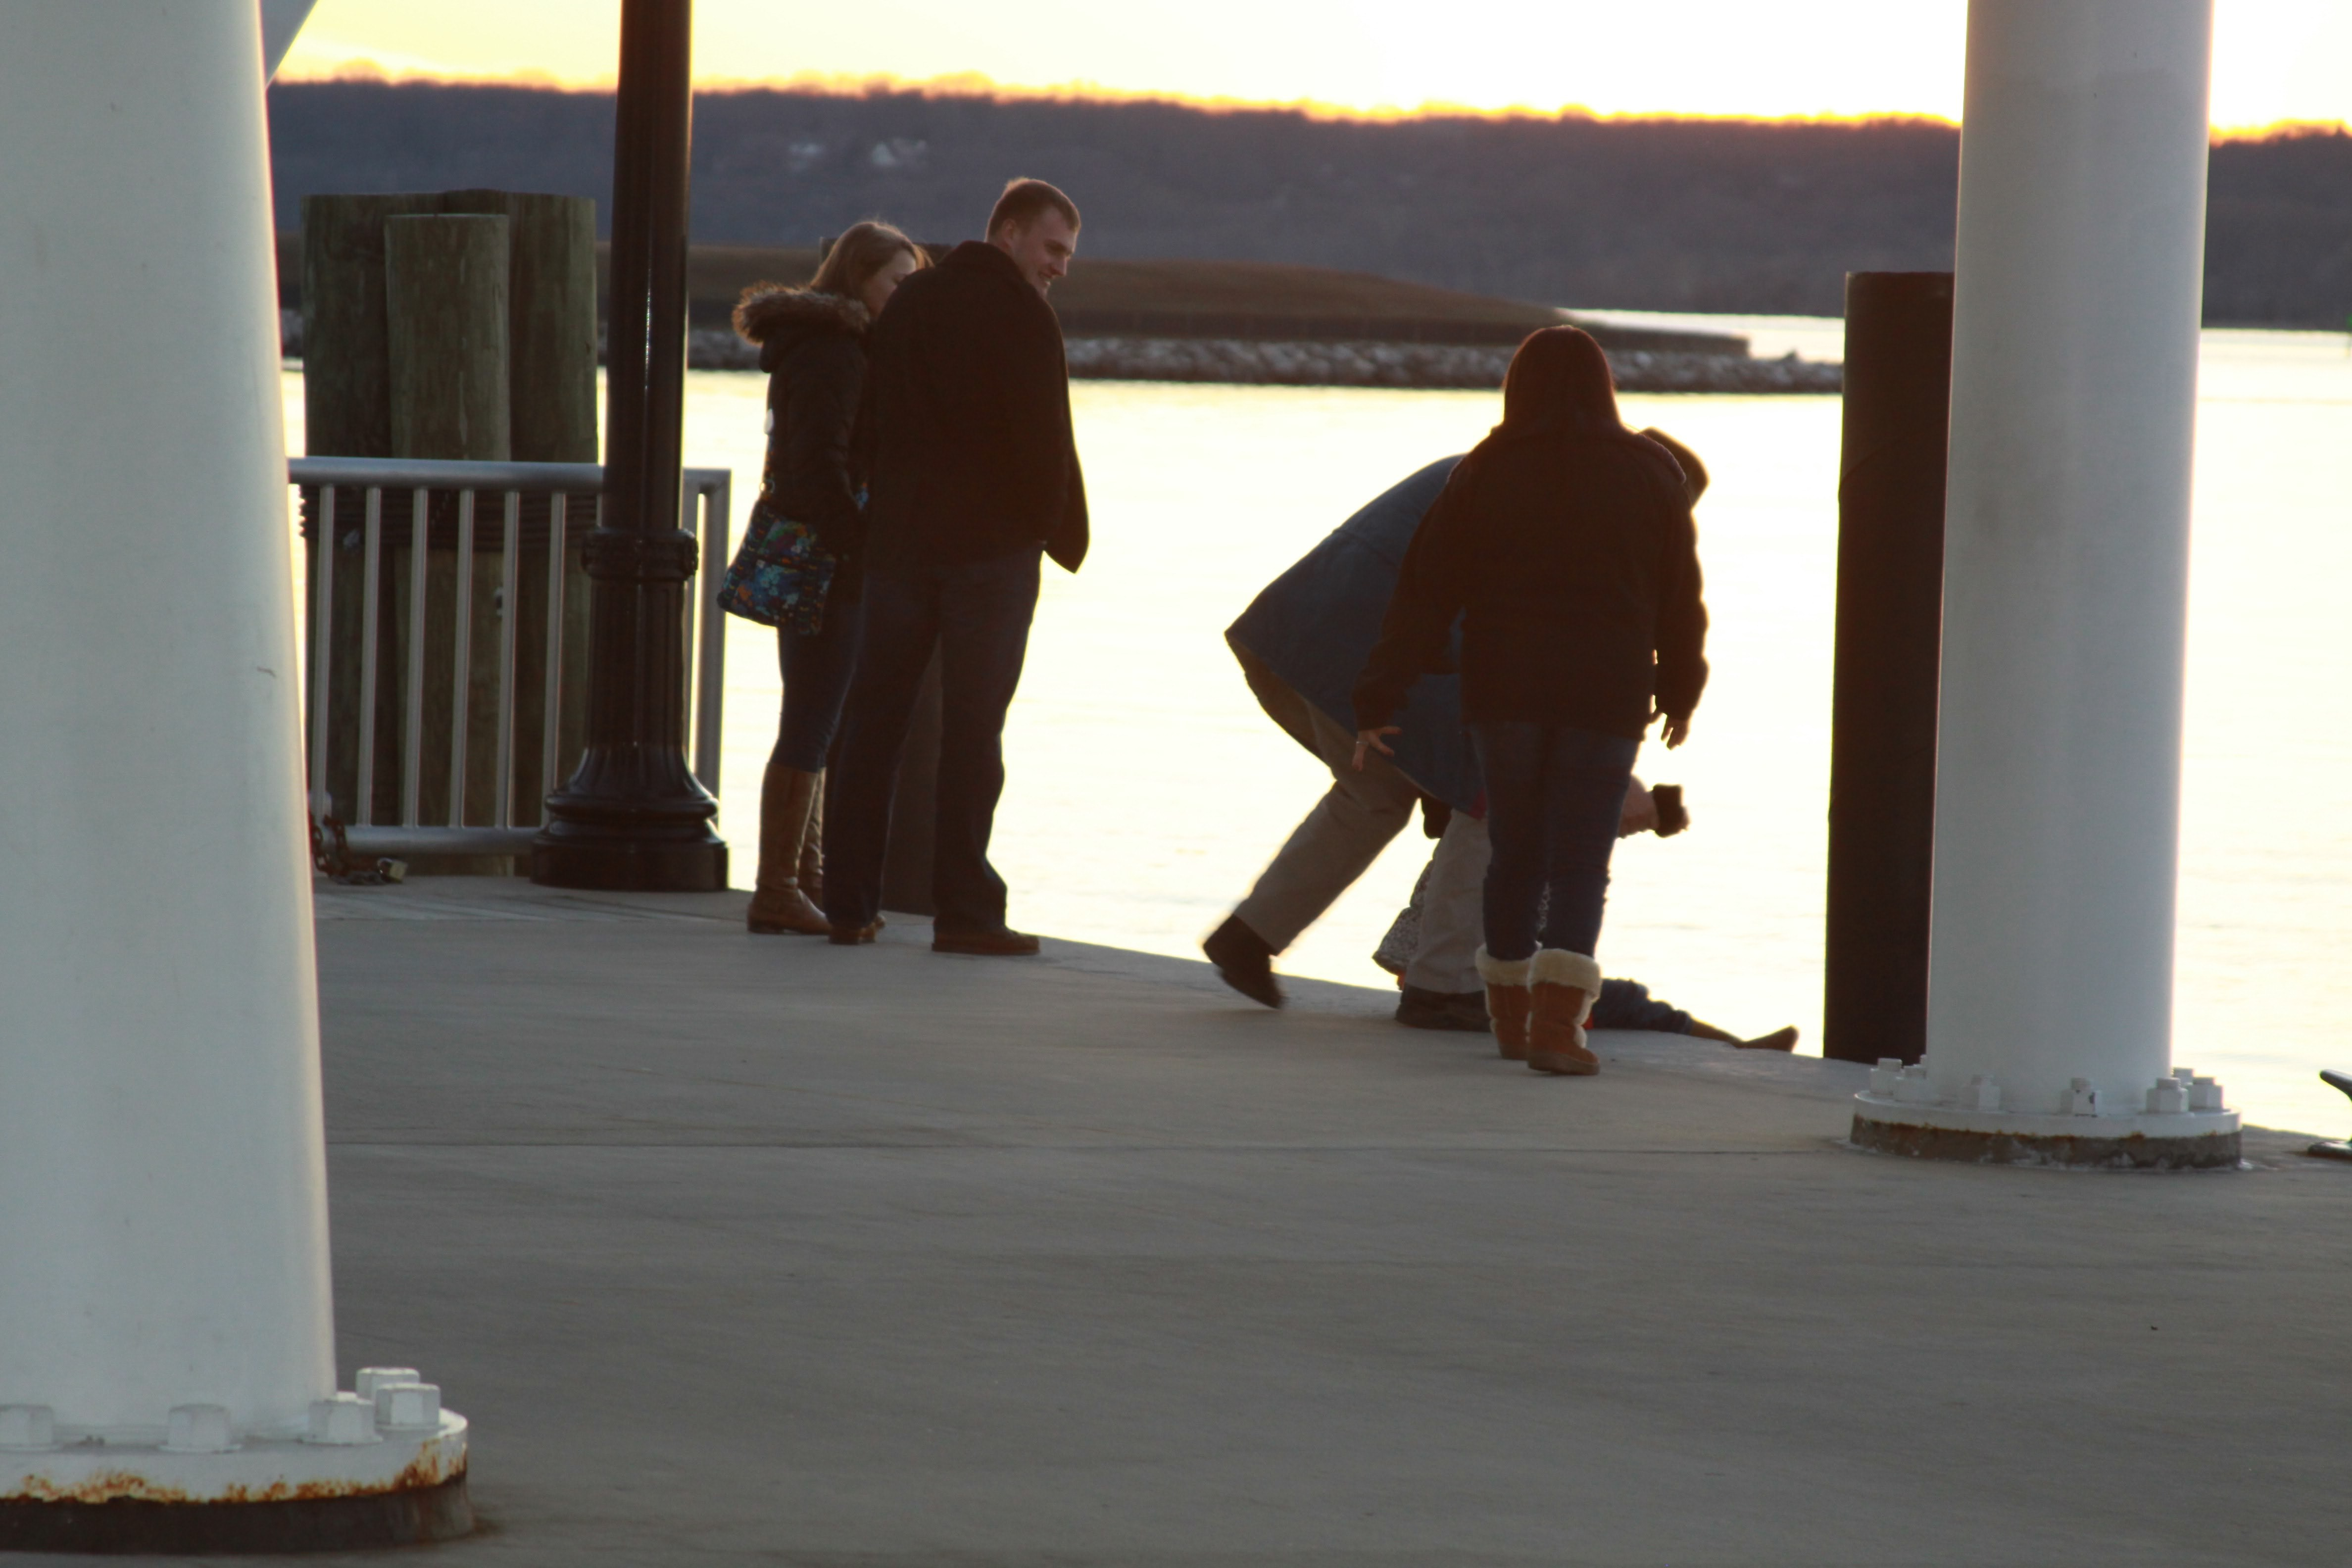 Image 11 of Kaitlin and Logan | Engaged at The National Harbor